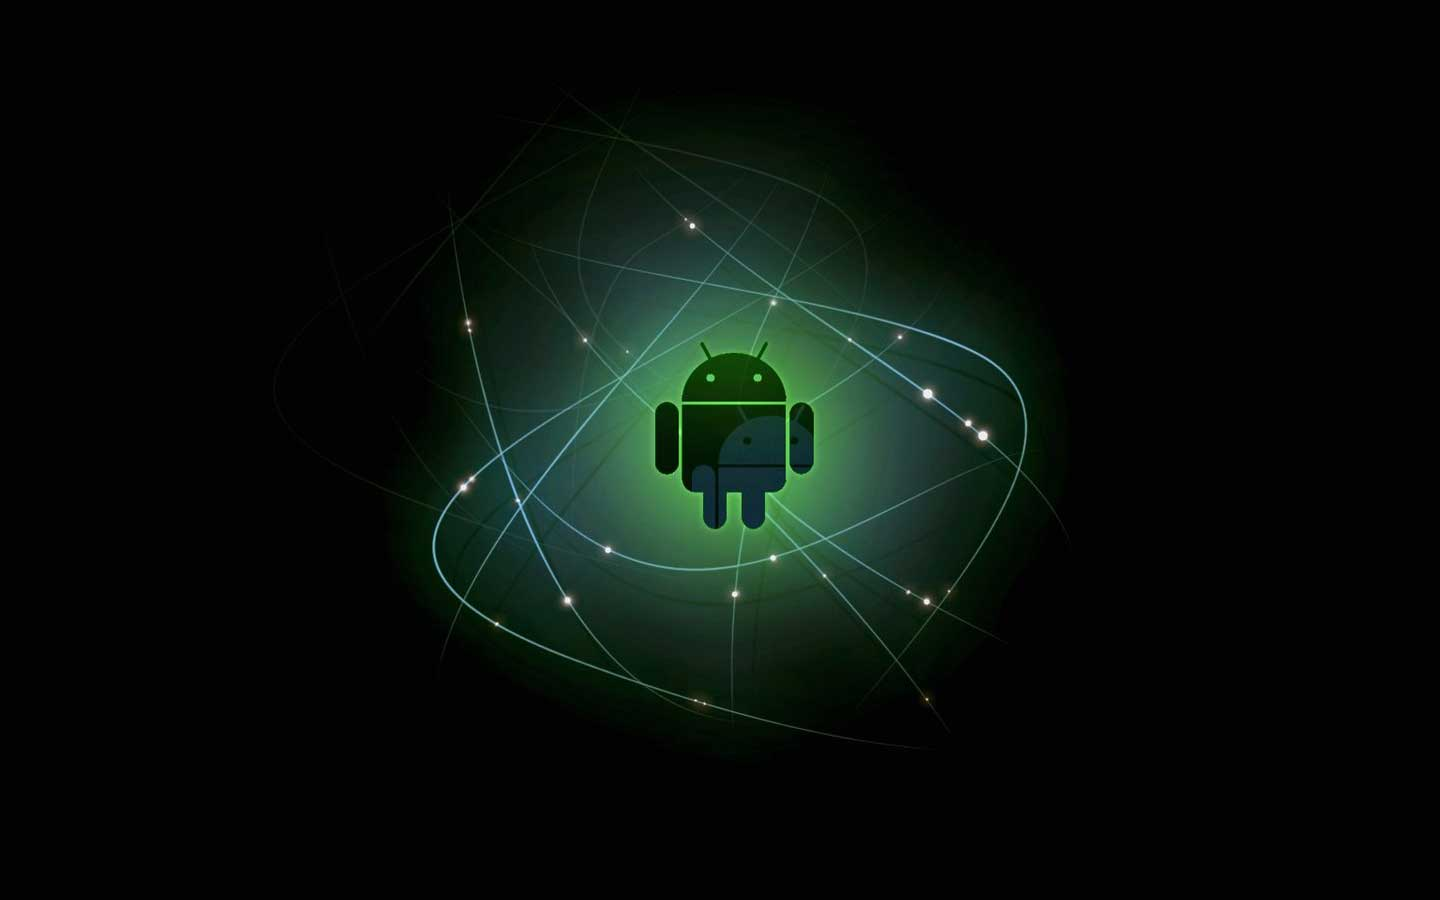 Android Wallpapers Hd: HD Wallpapers For Android